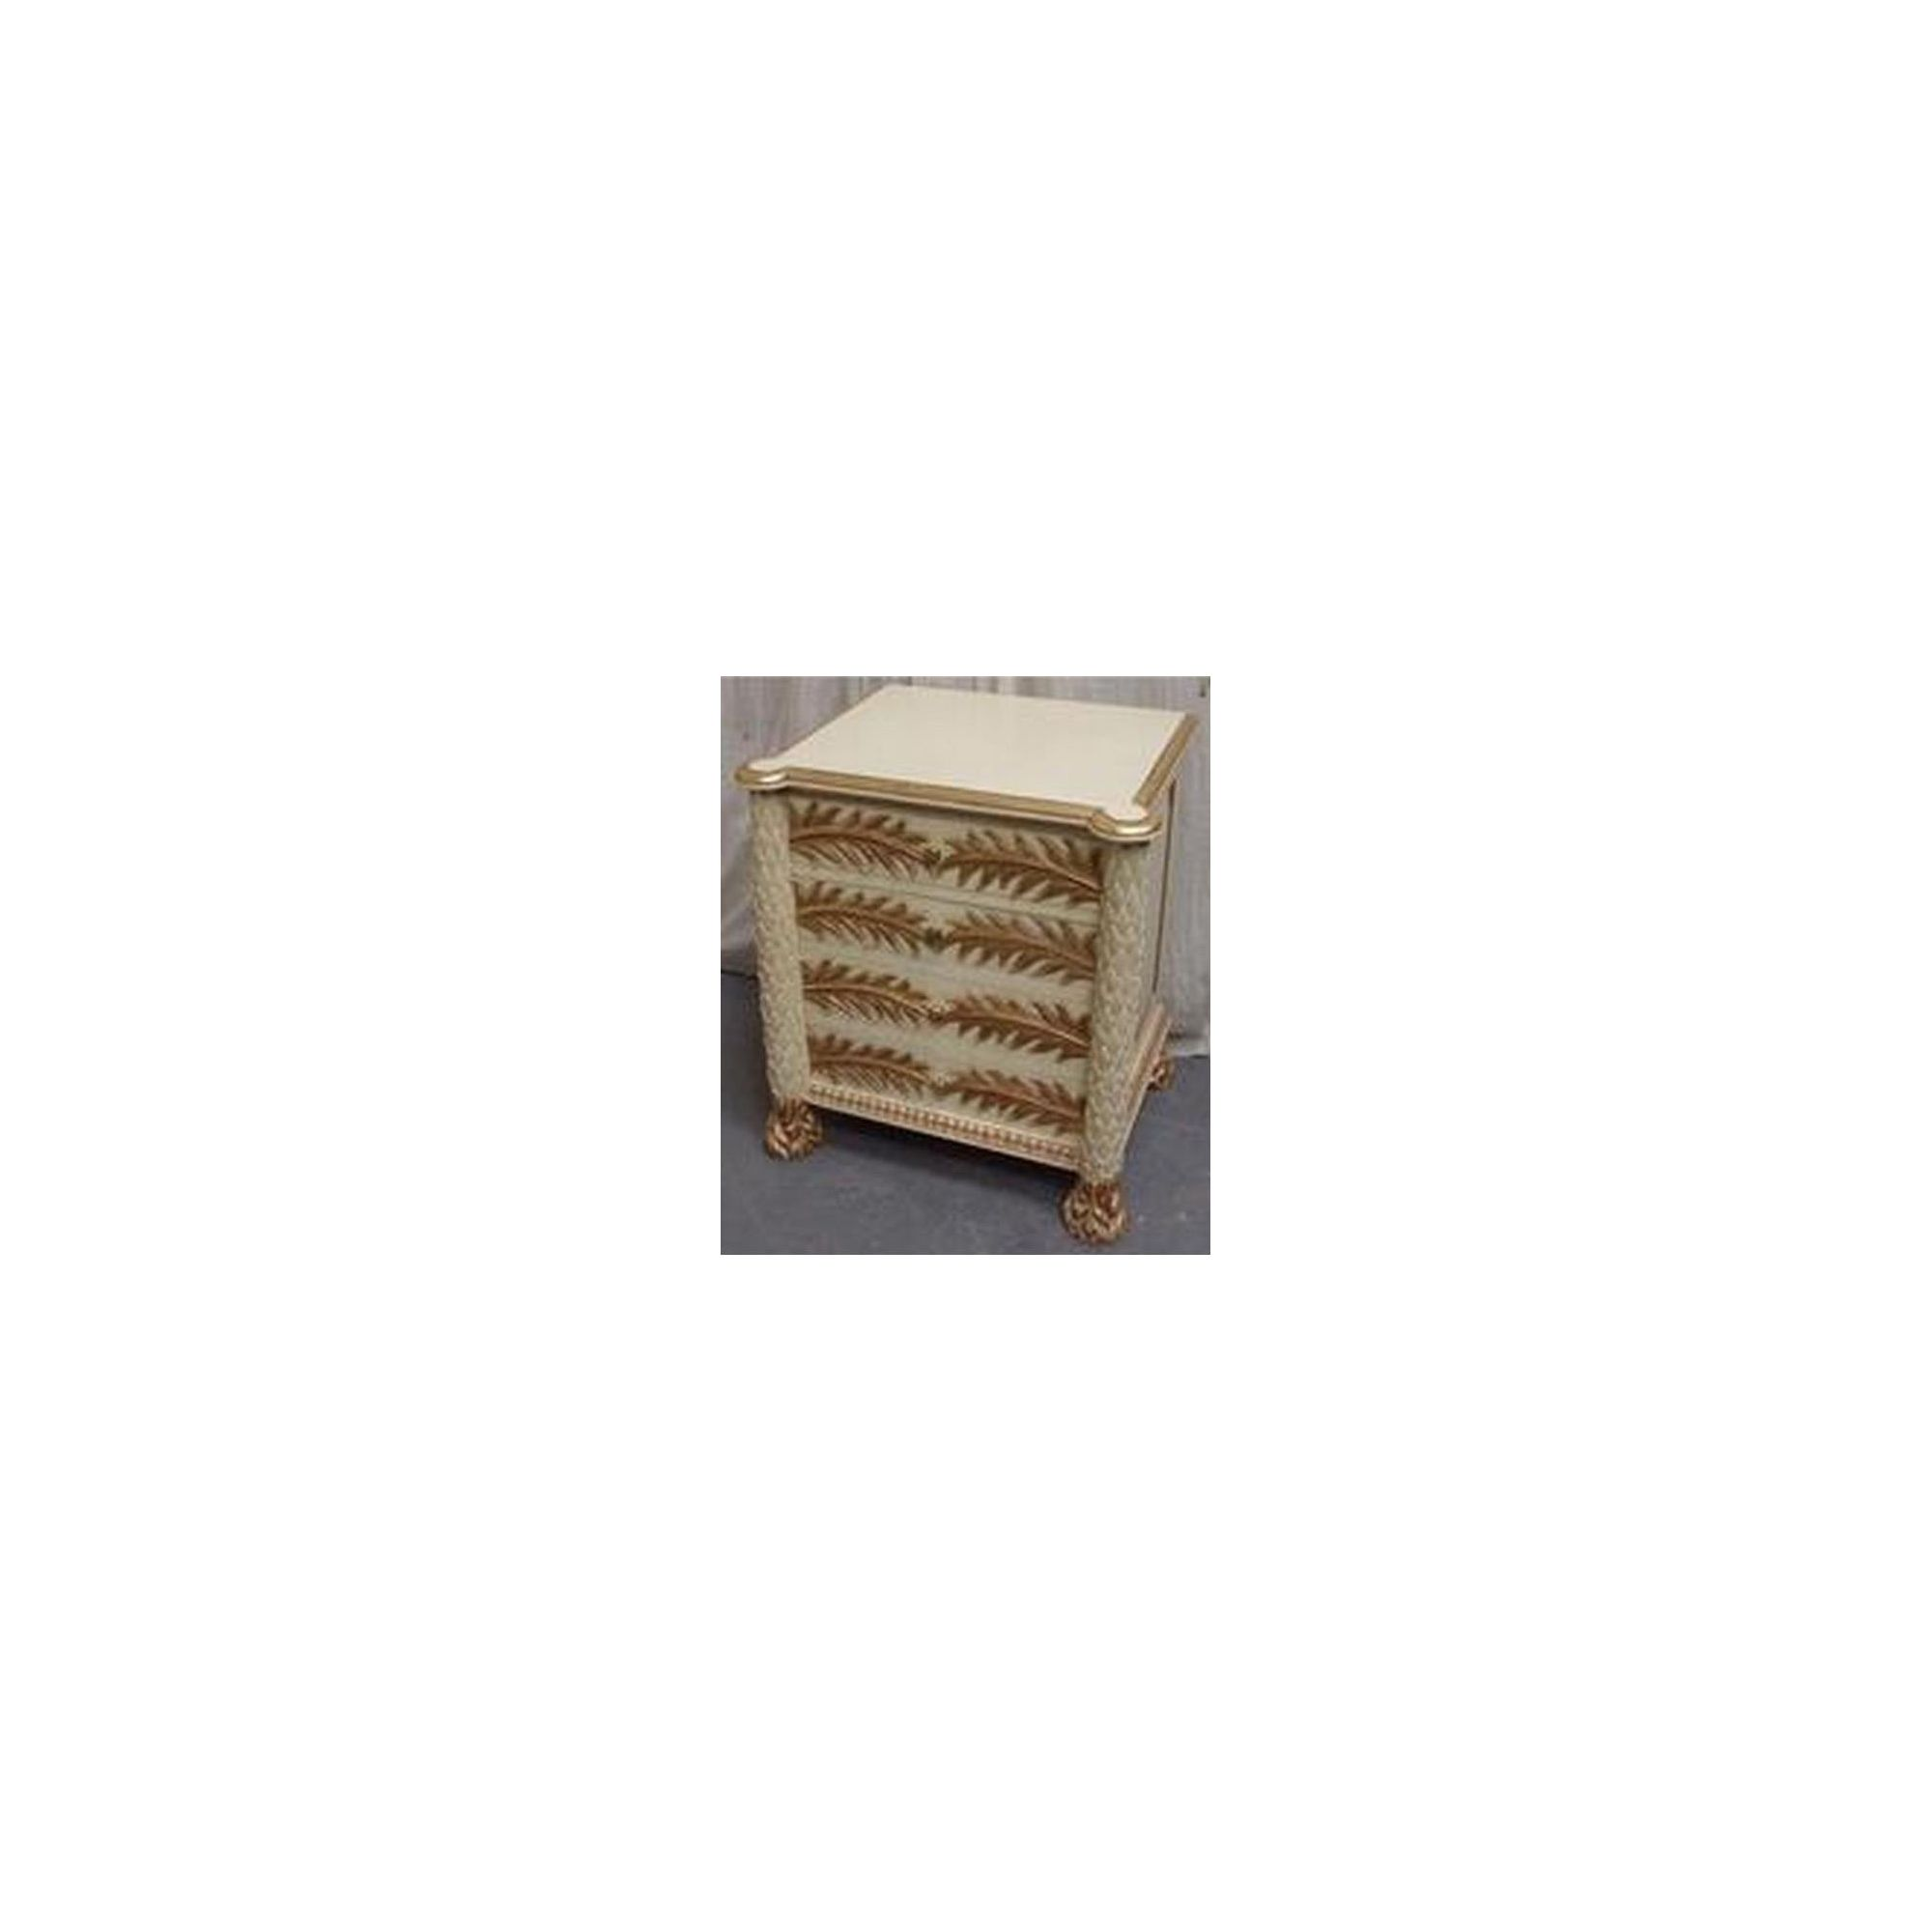 Lock stock and barrel Mahogany 4 Drawer Palm Chest - Antique White at Tesco Direct